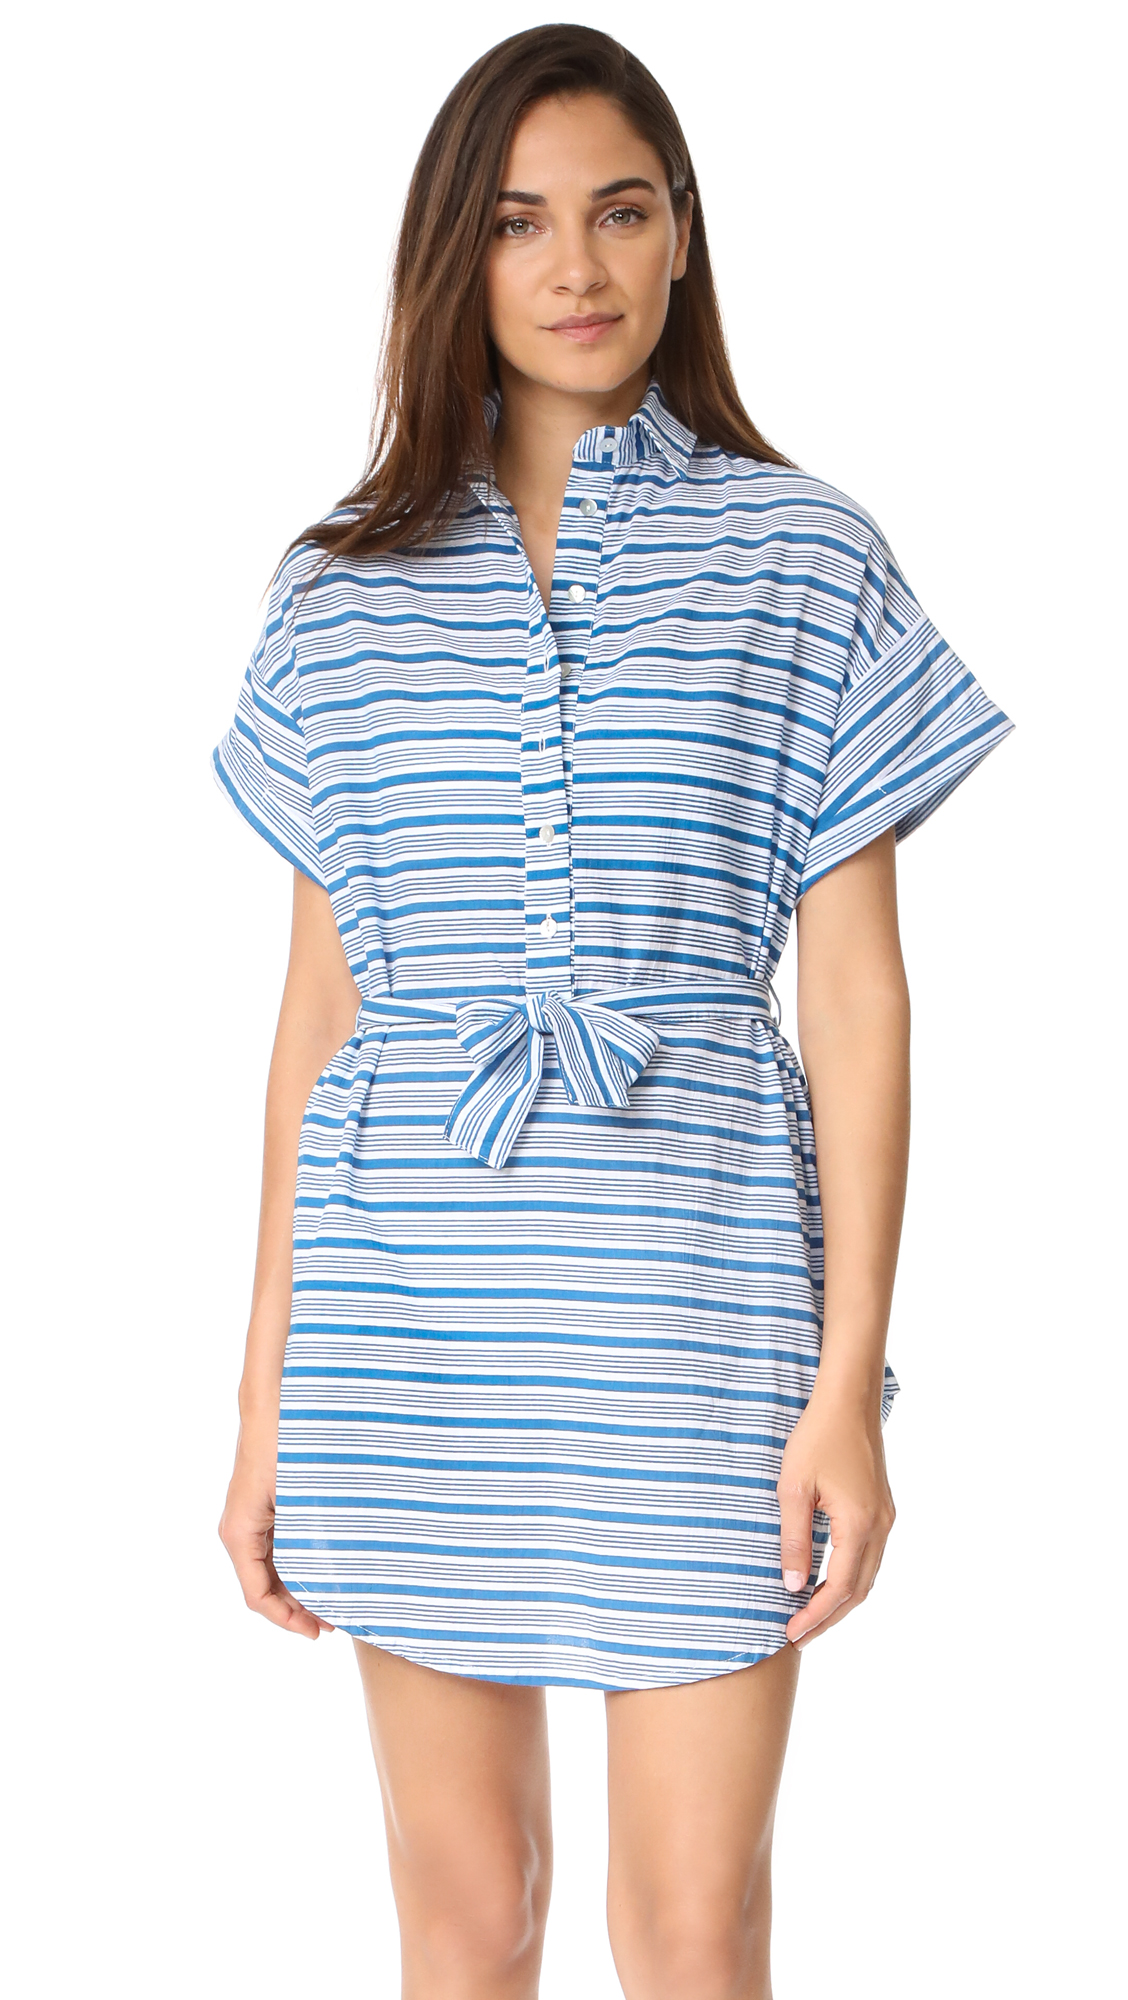 FAITHFULL THE BRAND Aaron Shirtdress - Puglia Stripe